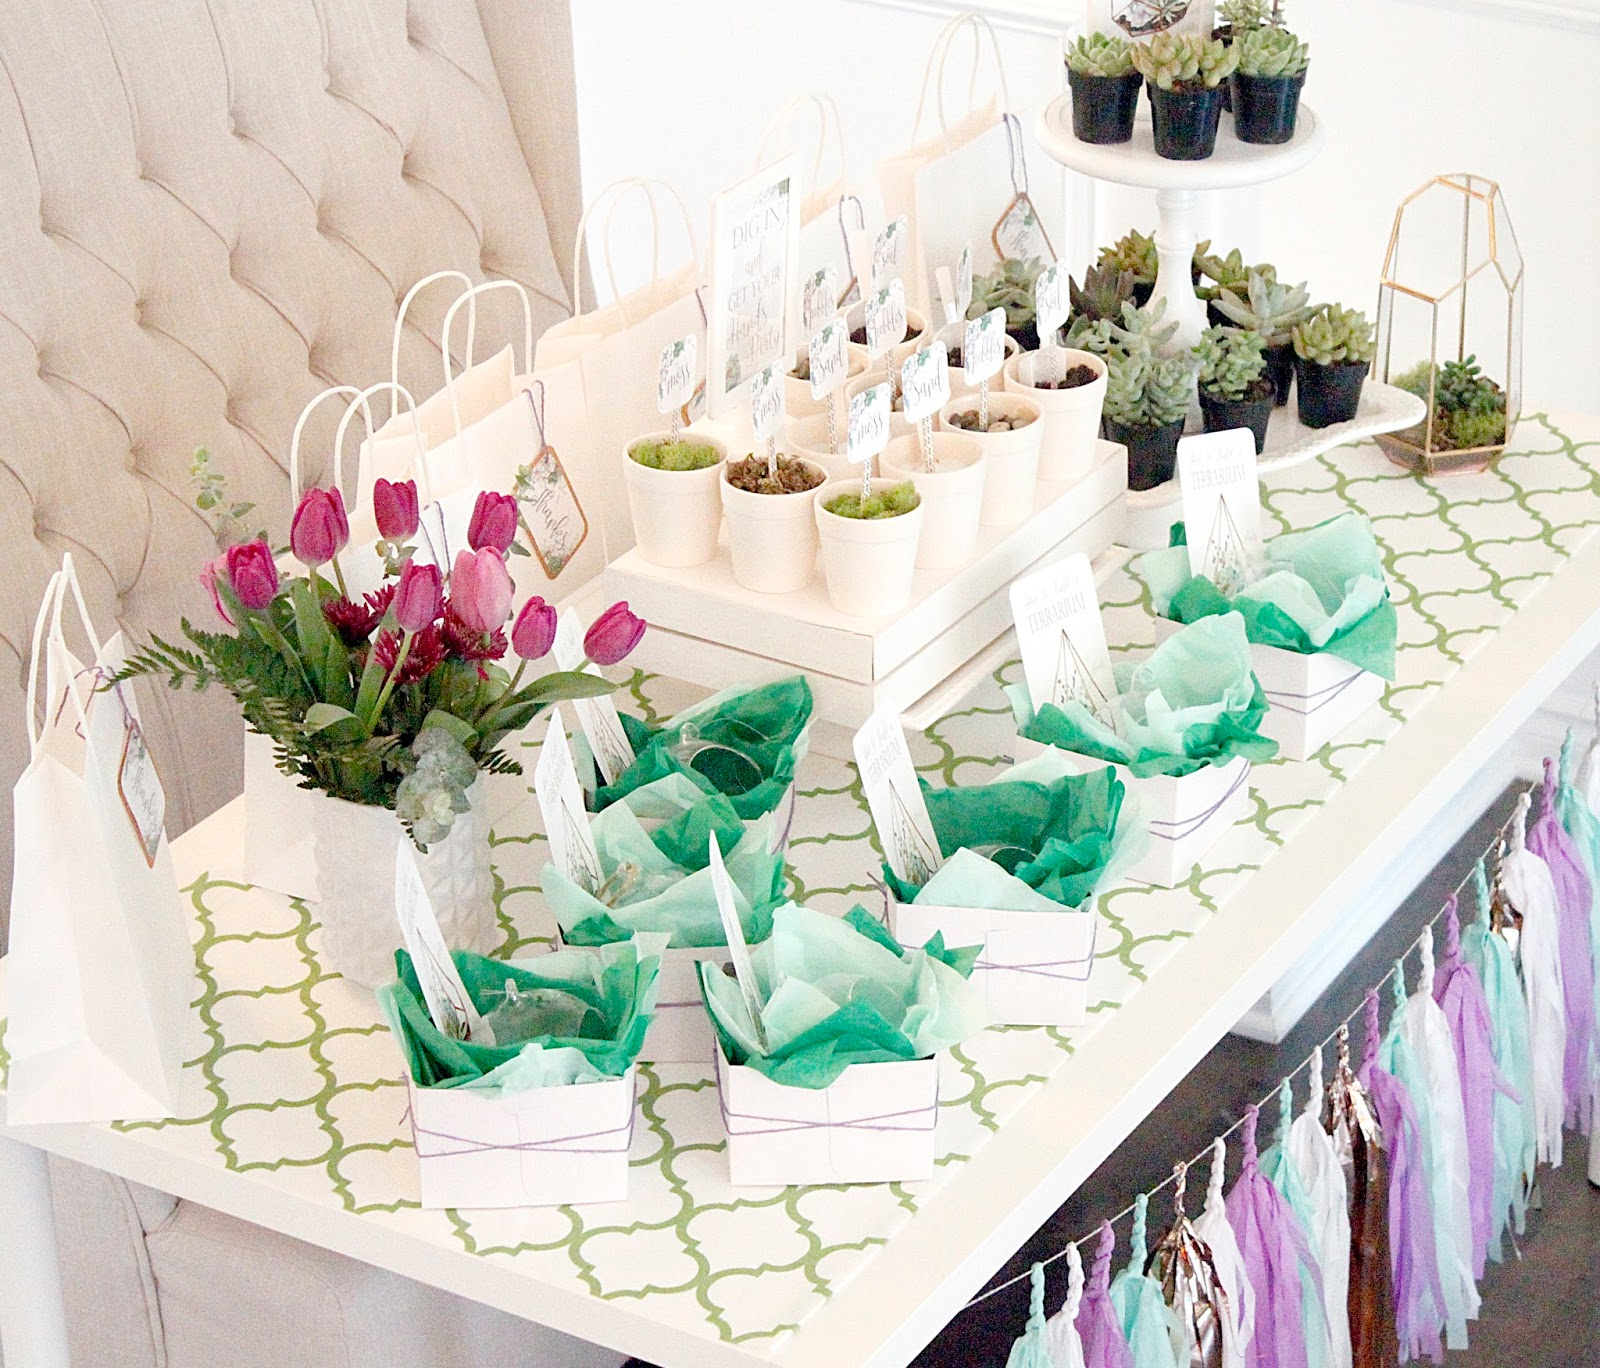 ... This Party Was A Must, As They Have So Many Supplies That I Needed To  Create The Most Adorable Terrariums, Plus Many More Wonderful Products As  Well.